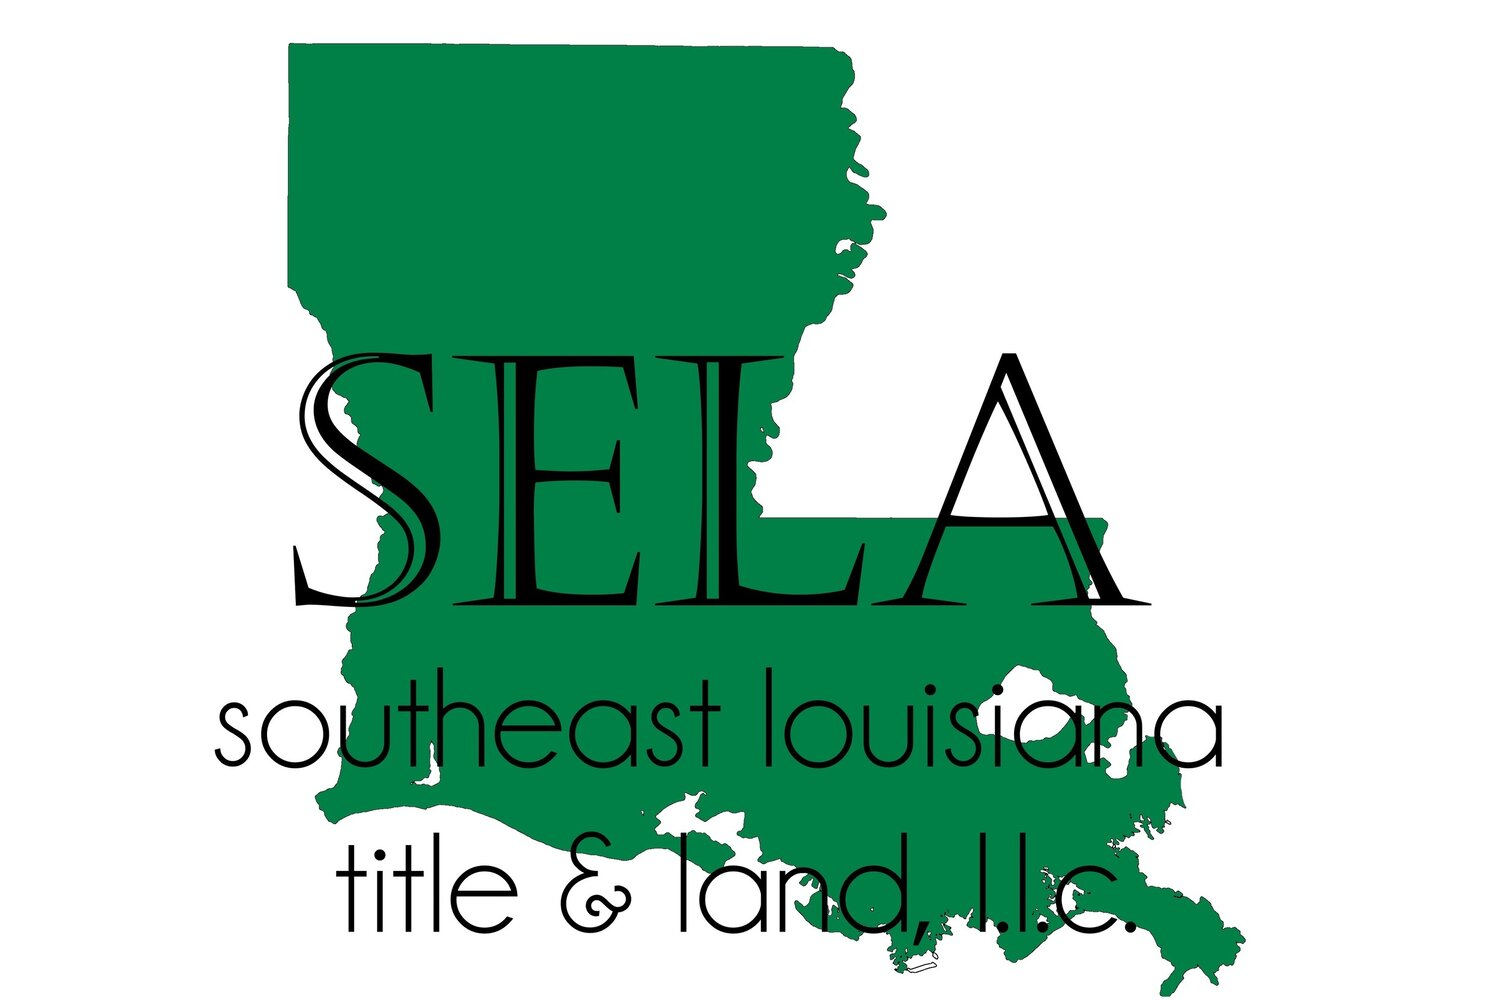 Southeast Louisiana Title and Land, LLC